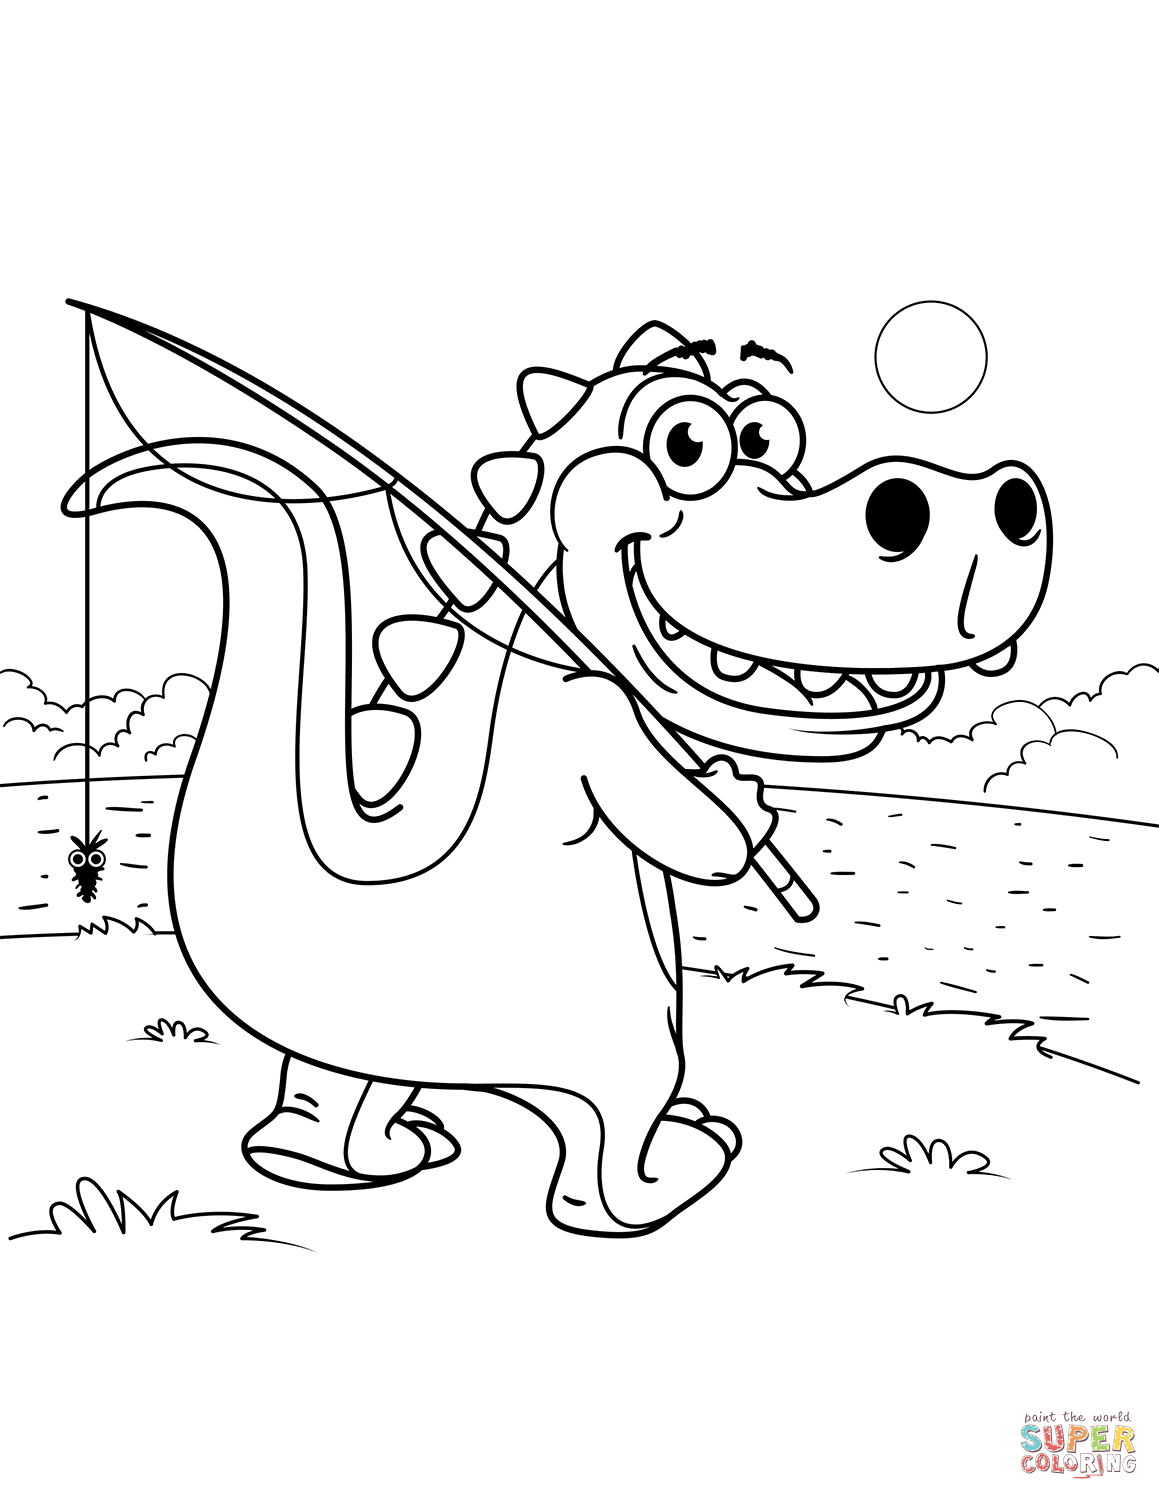 Cute Tyrannosaurus Goes Fishing Coloring Page